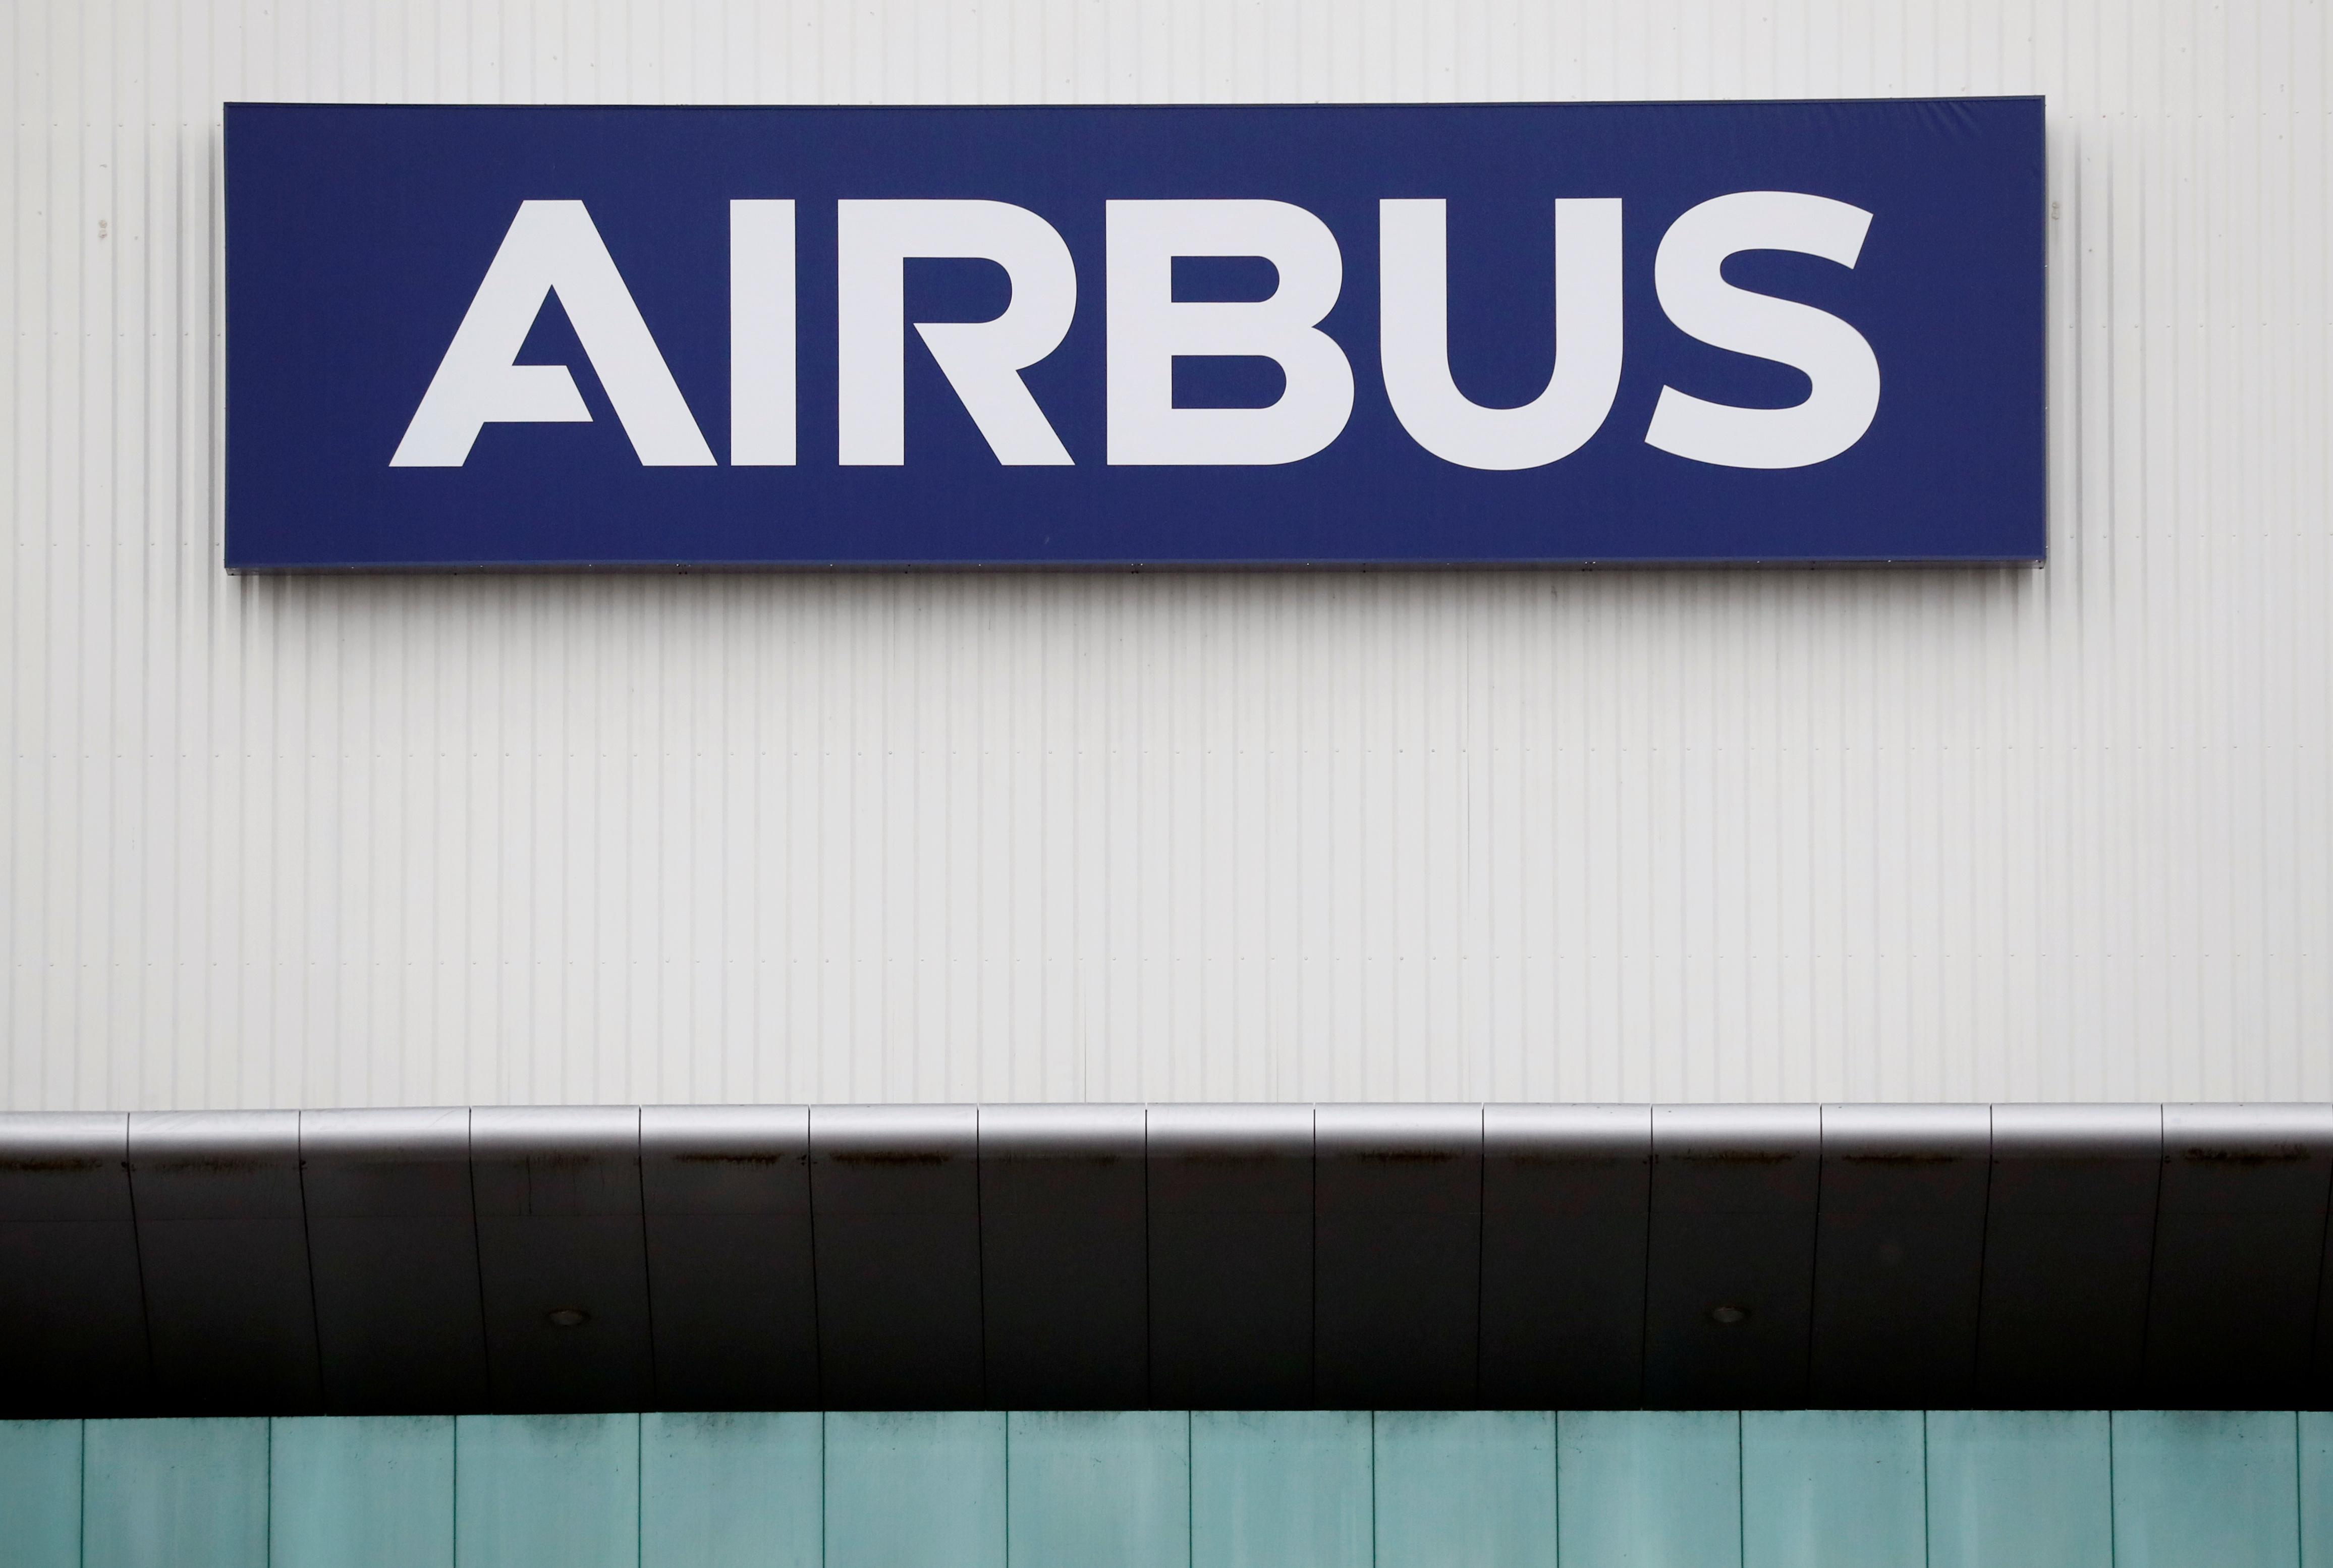 Airbus A220 engines pass engine checks after recent failures